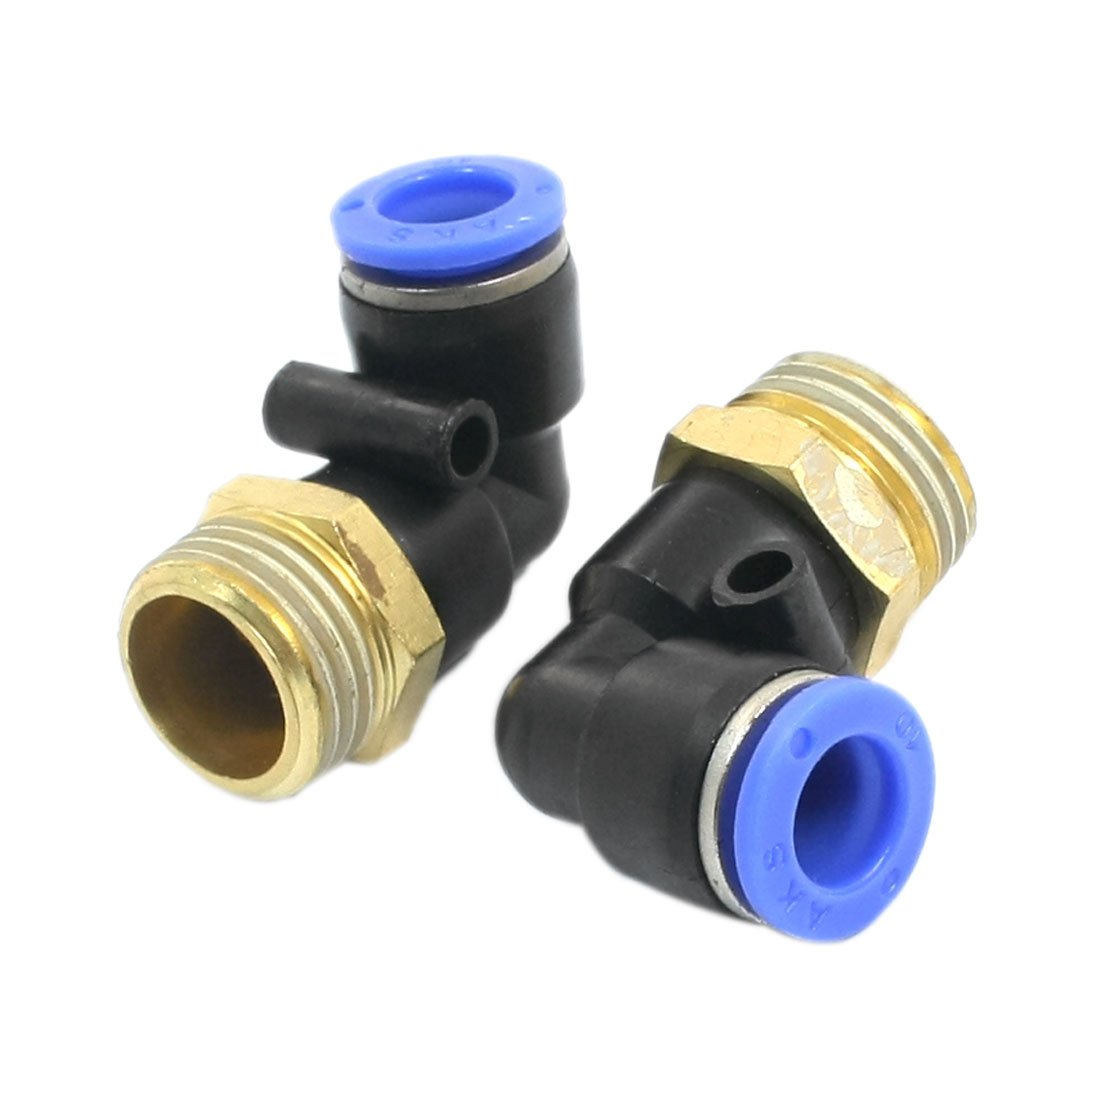 2PCS 1/2PT Male Thread to 10mm Push in Tube Dia L Shaped Pneumatic Air Quick Release Fitting Coupler Joint Connector